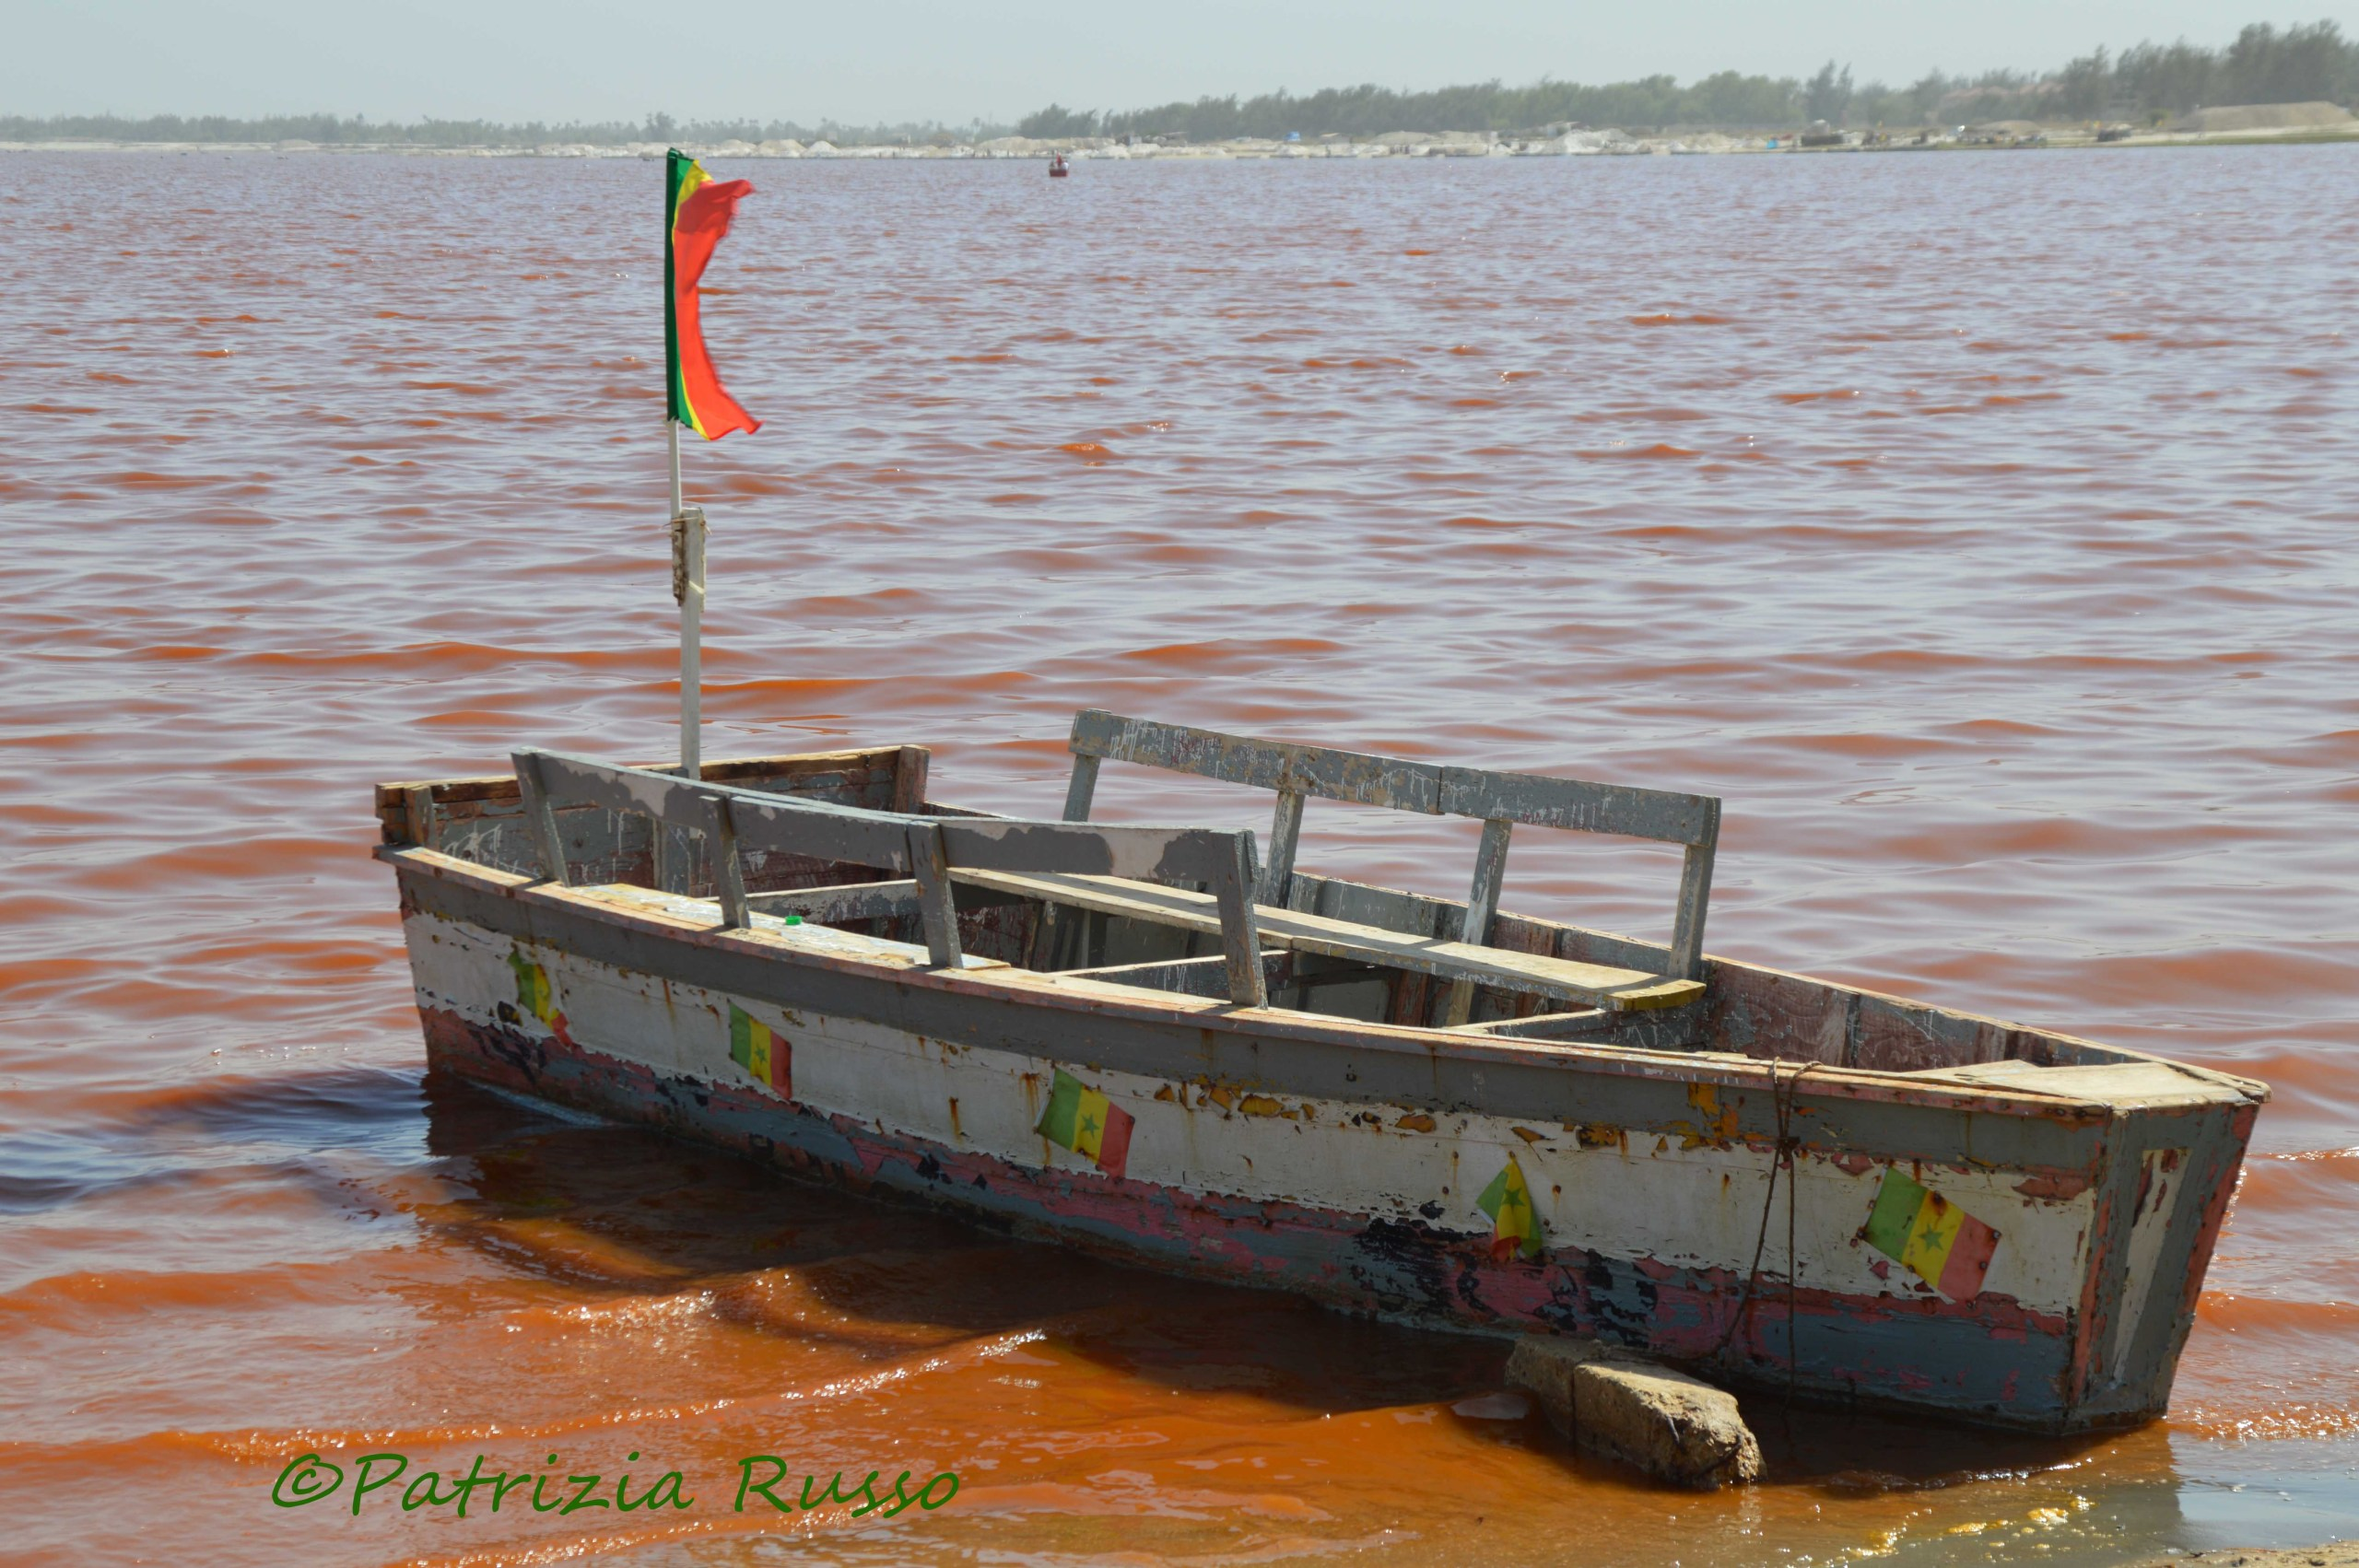 Lago Rosa Ph. P.Russo/IT24